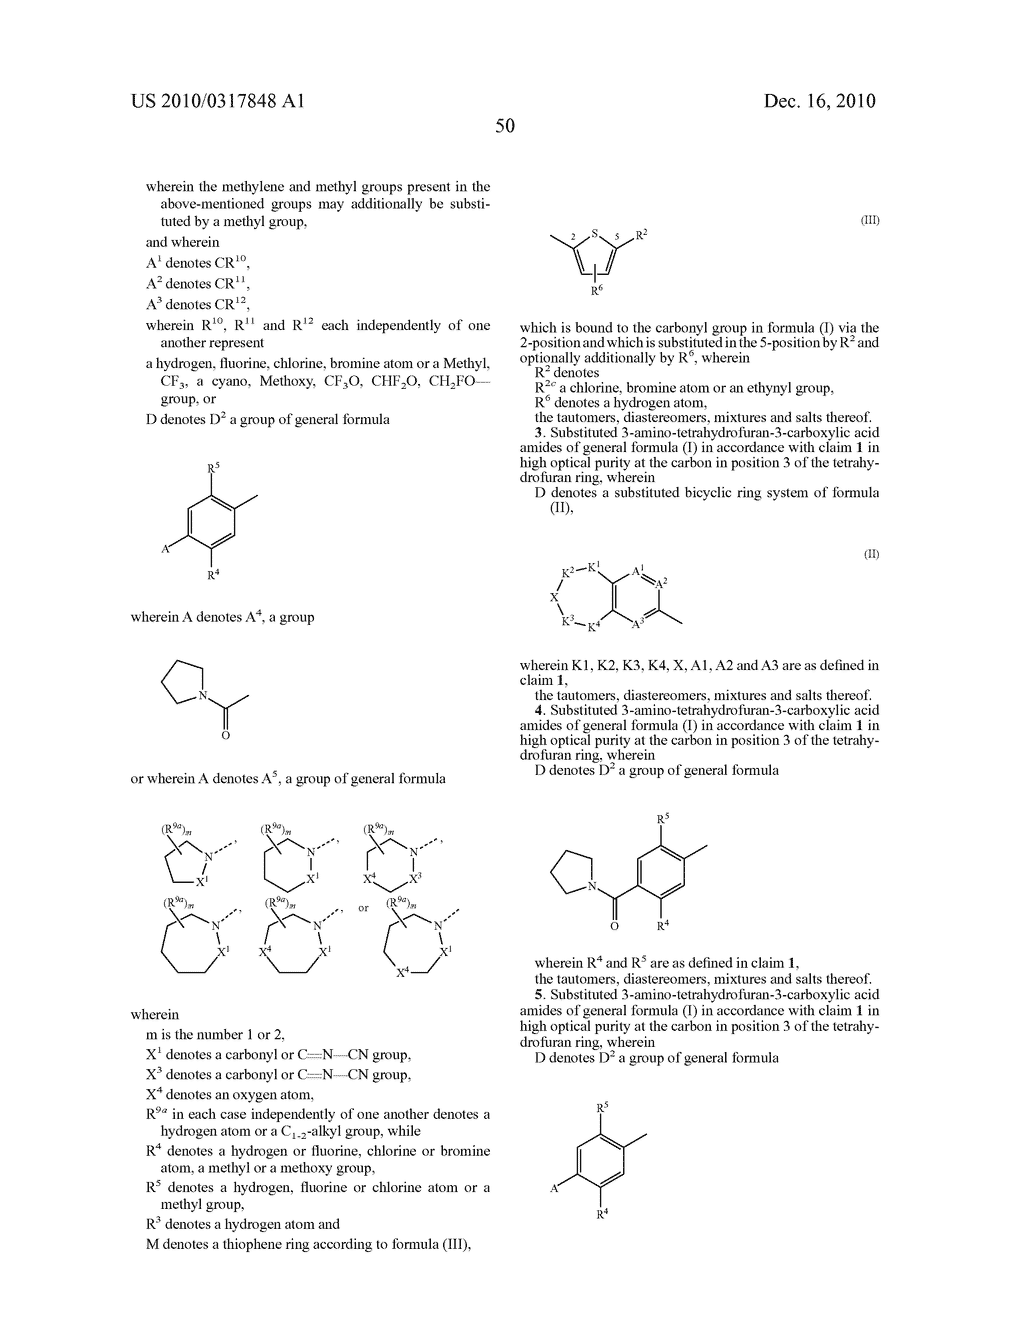 PROCESS FOR THE SYNTHESIS OF DERIVATIVES OF 3-AMINO-TETRAHYDROFURAN-3-CARBOXYLIC ACID AND USE THEREOF AS MEDICAMENTS - diagram, schematic, and image 55